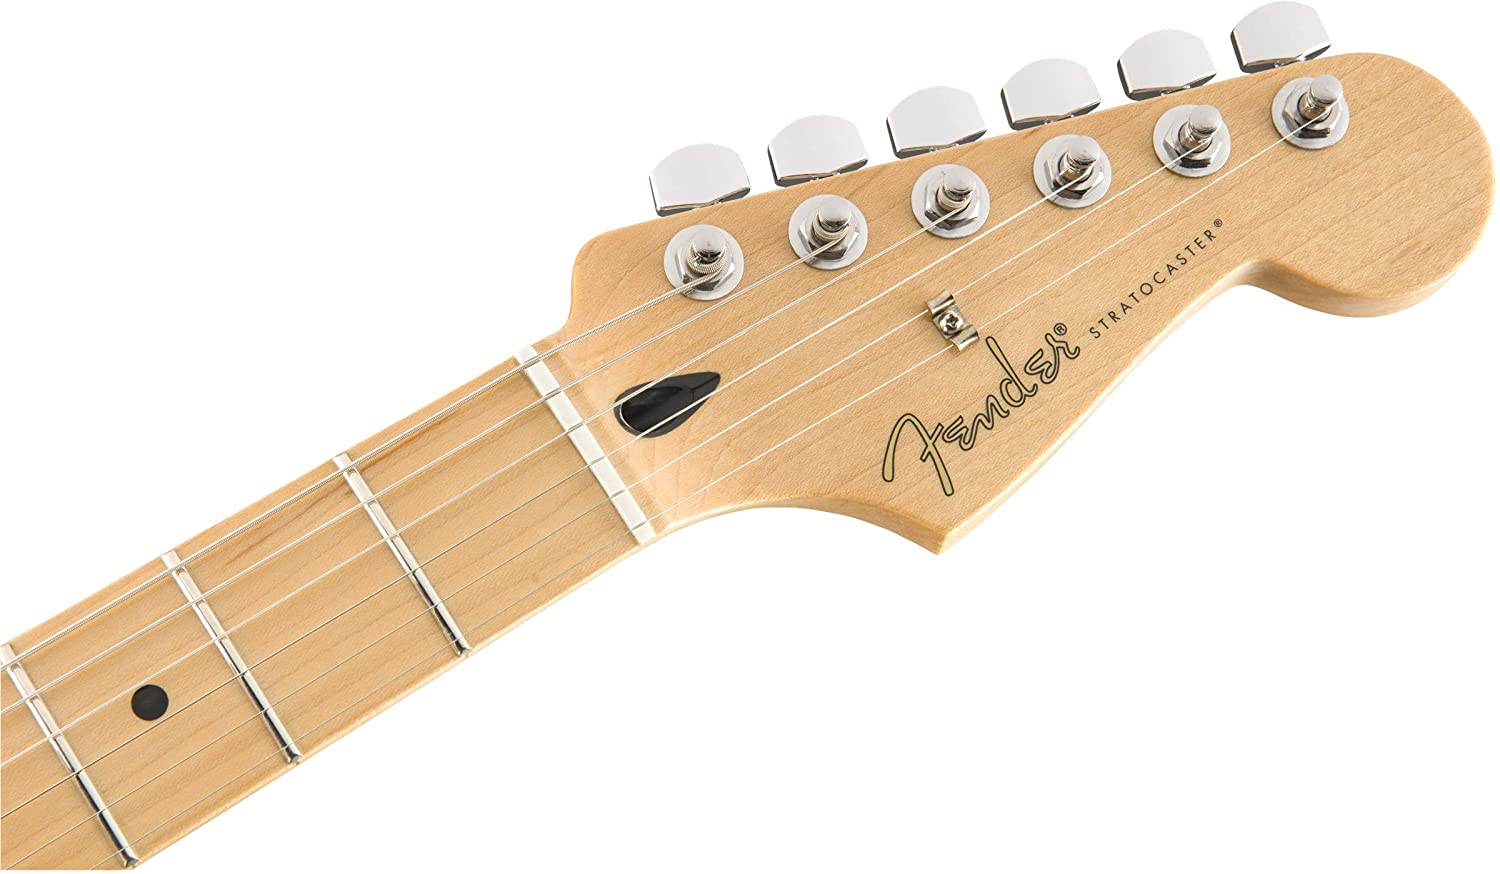 Amazon.com: Fender Player Stratocaster Electric Guitar - Maple Fingerboard - Buttercream: Musical Instruments